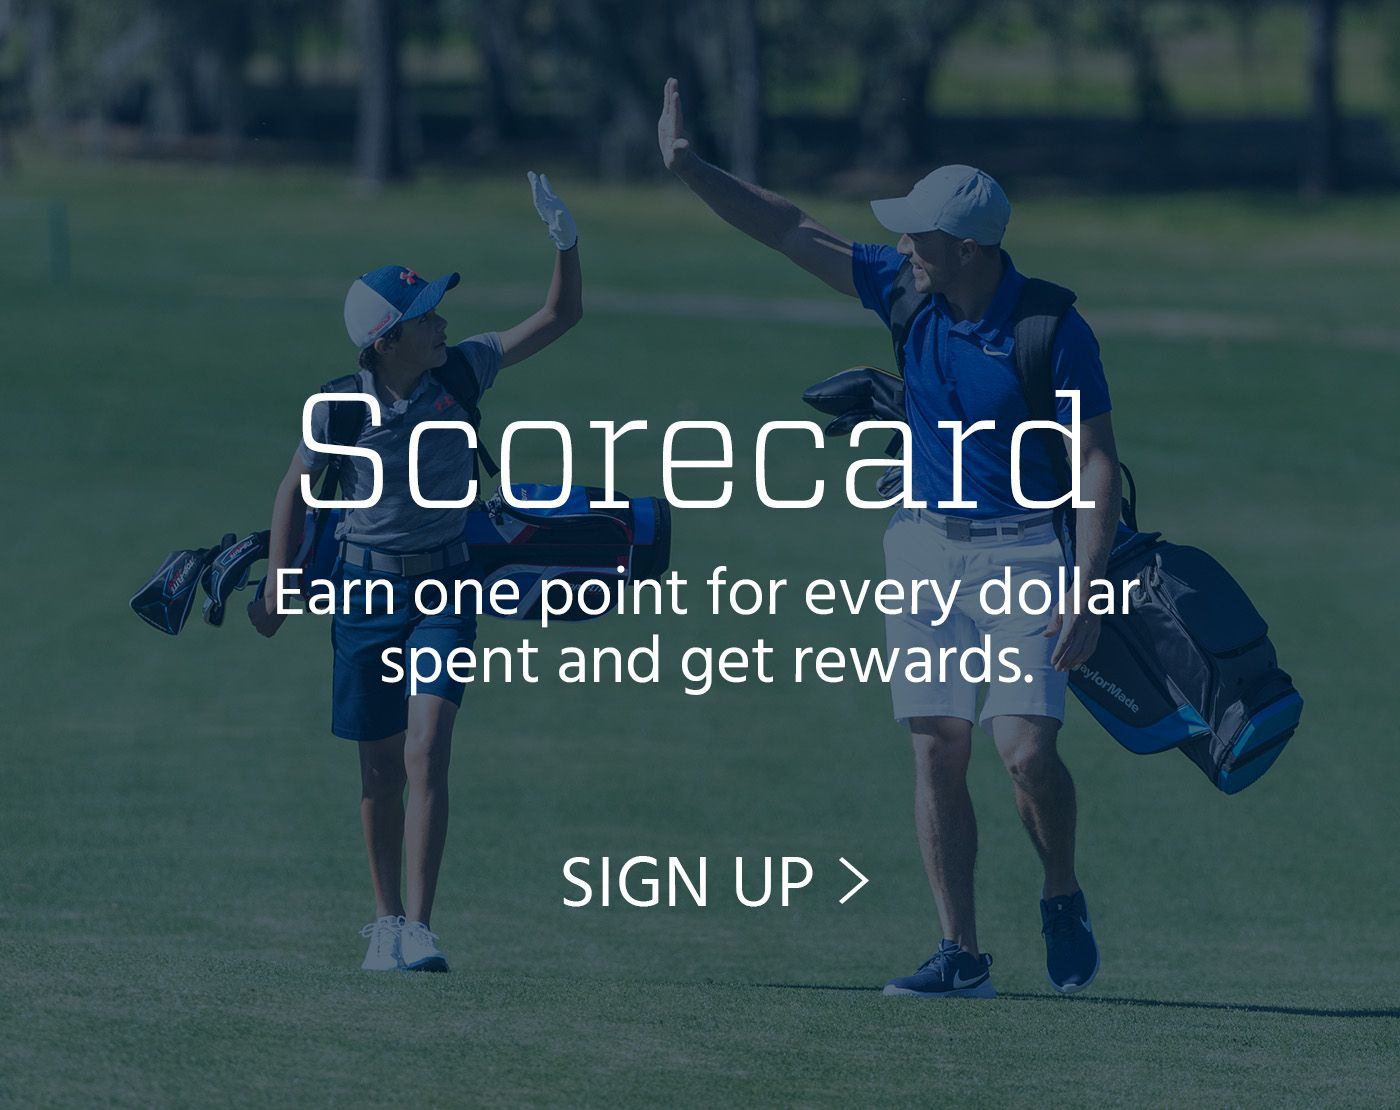 Earn one point for every dollar spend and get rewards - signup for scorecard now